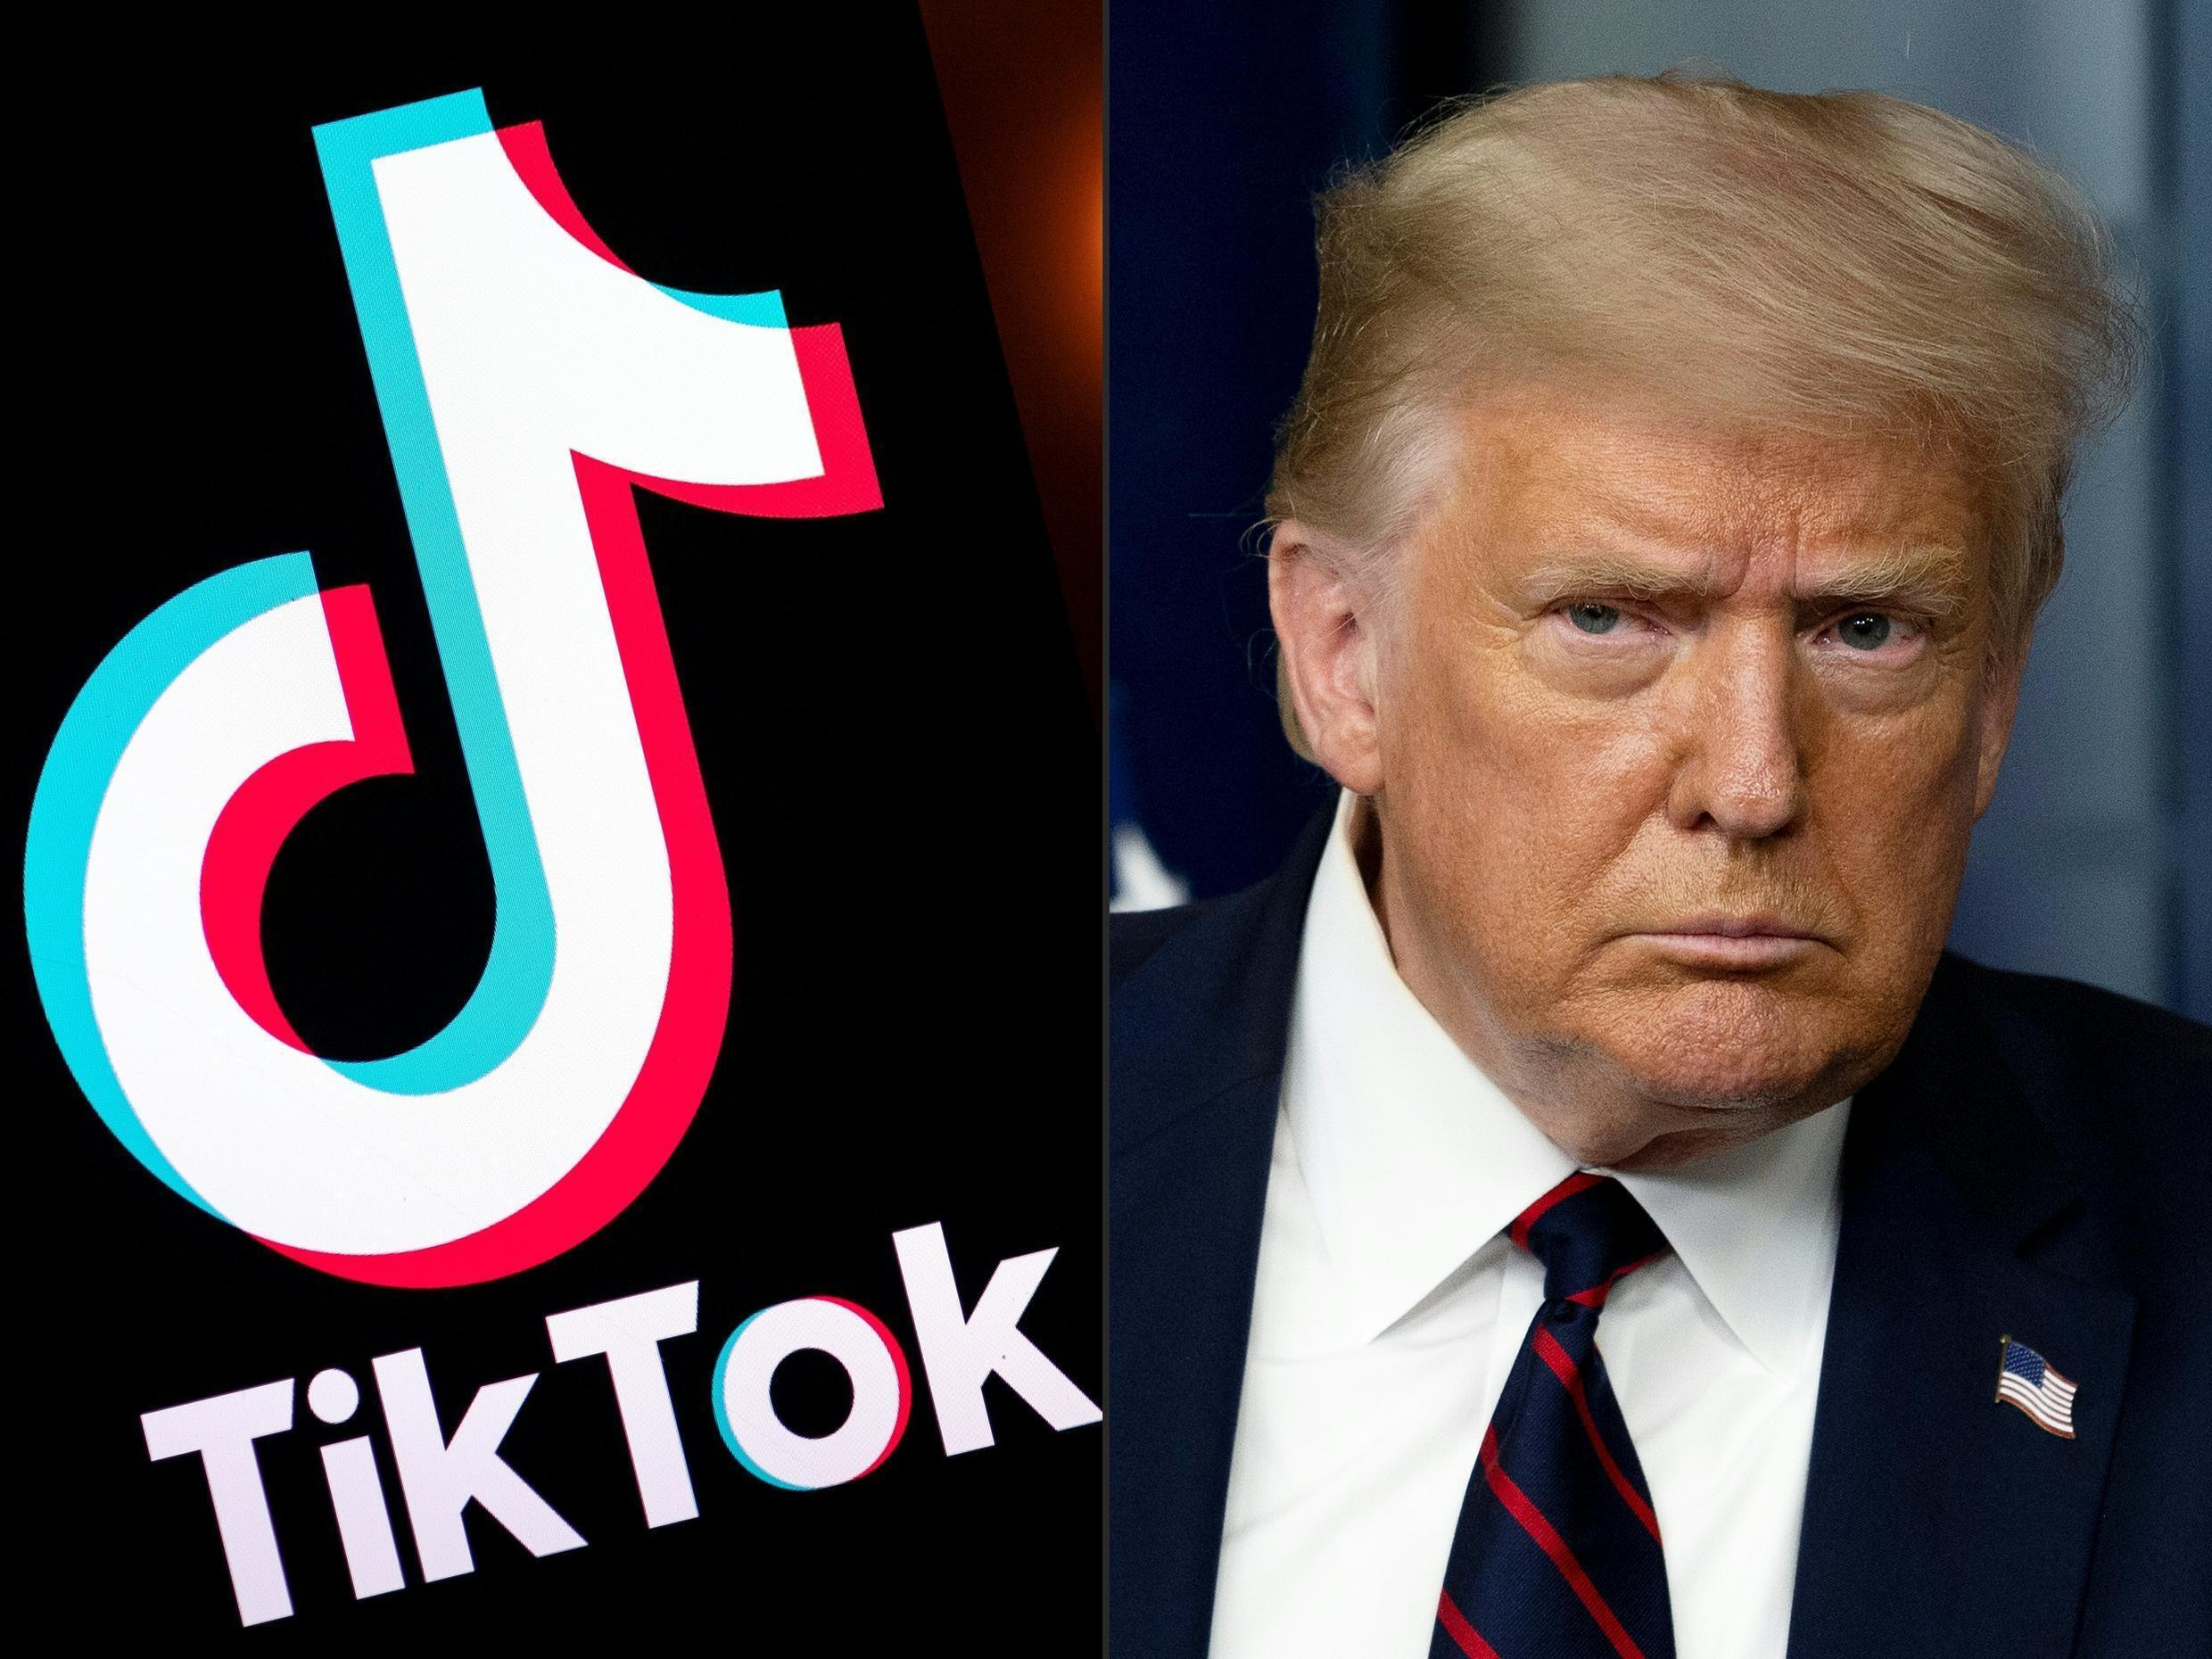 In one of many fronts in the increasingly poisonous US-Chinese relationship, President Donald Trump has threatened to ban the wildly popular app TikTok, citing national security concerns